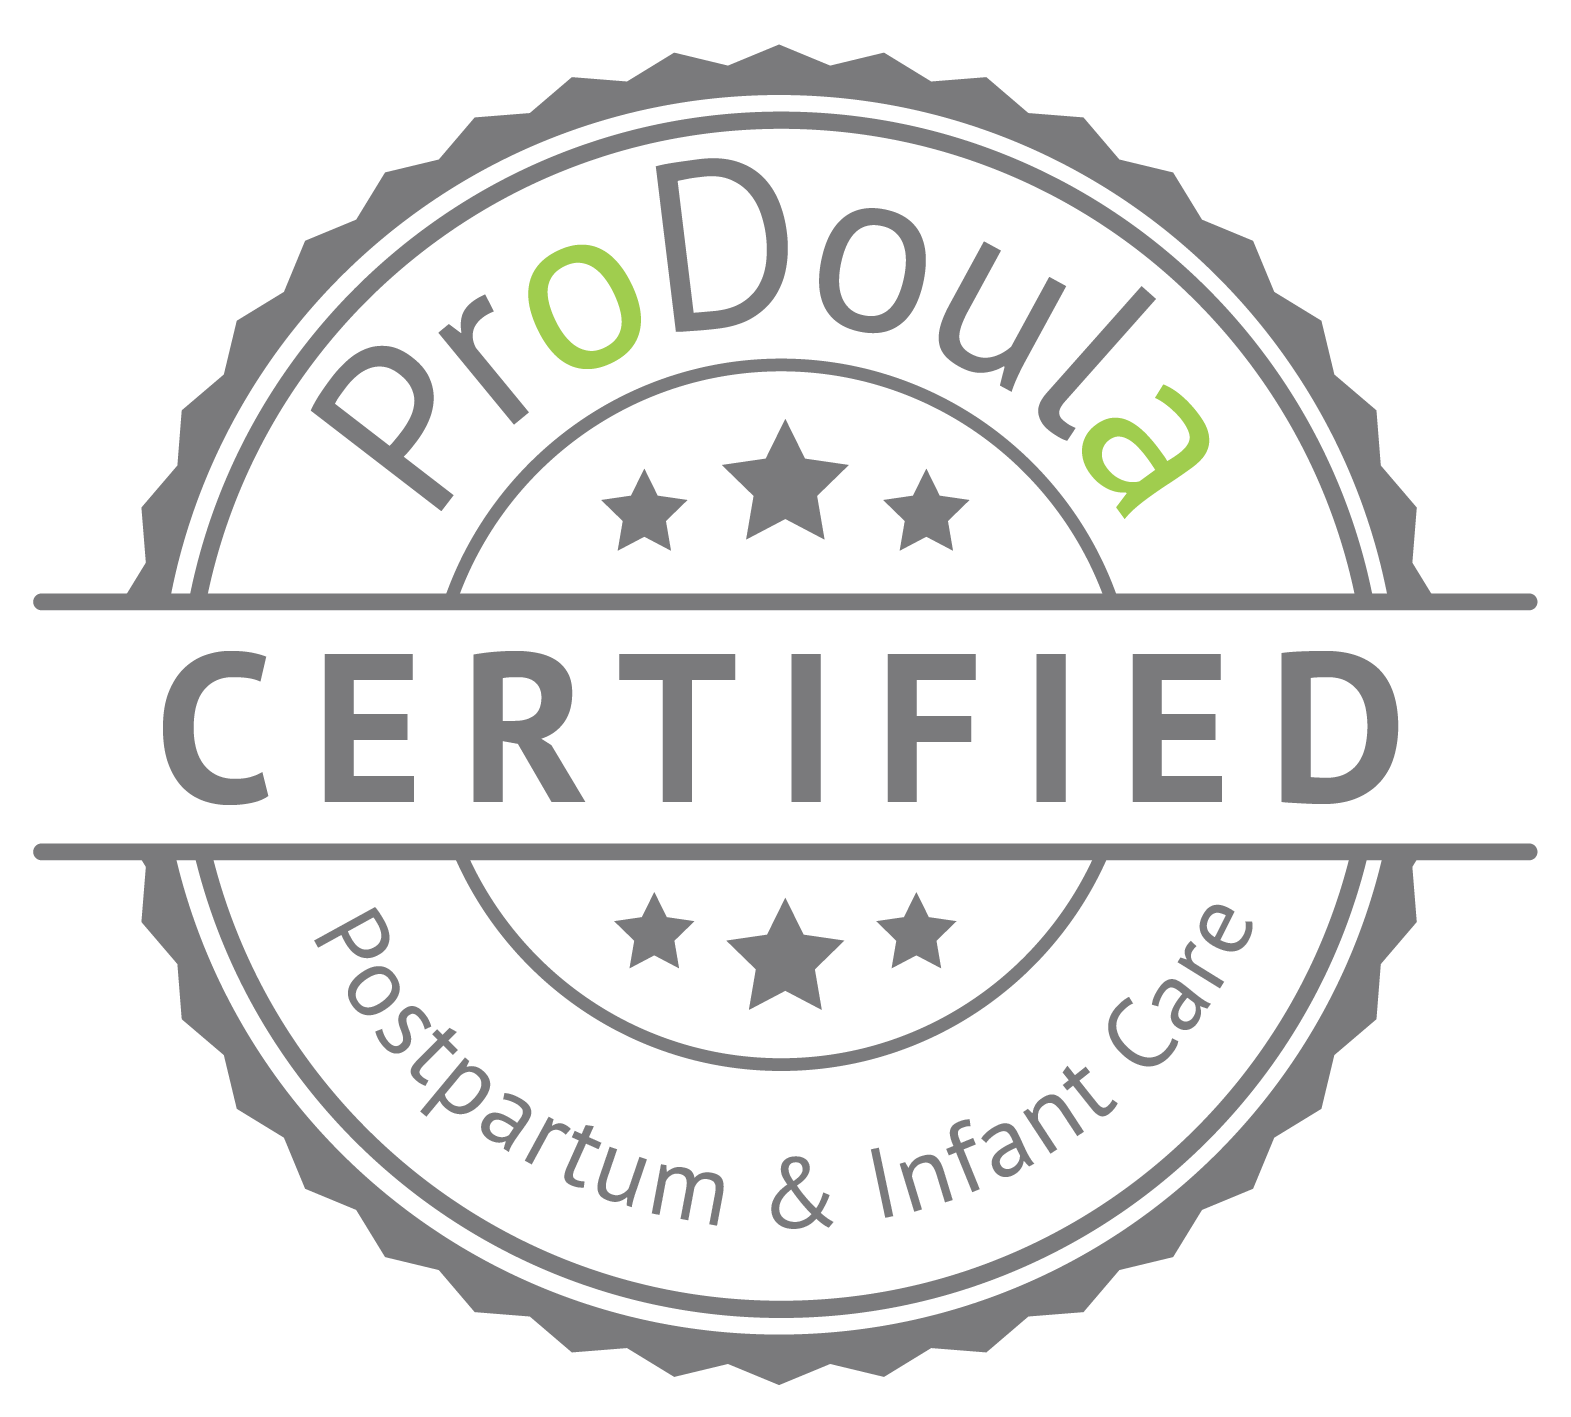 P&ICD-certified-badge (1).png